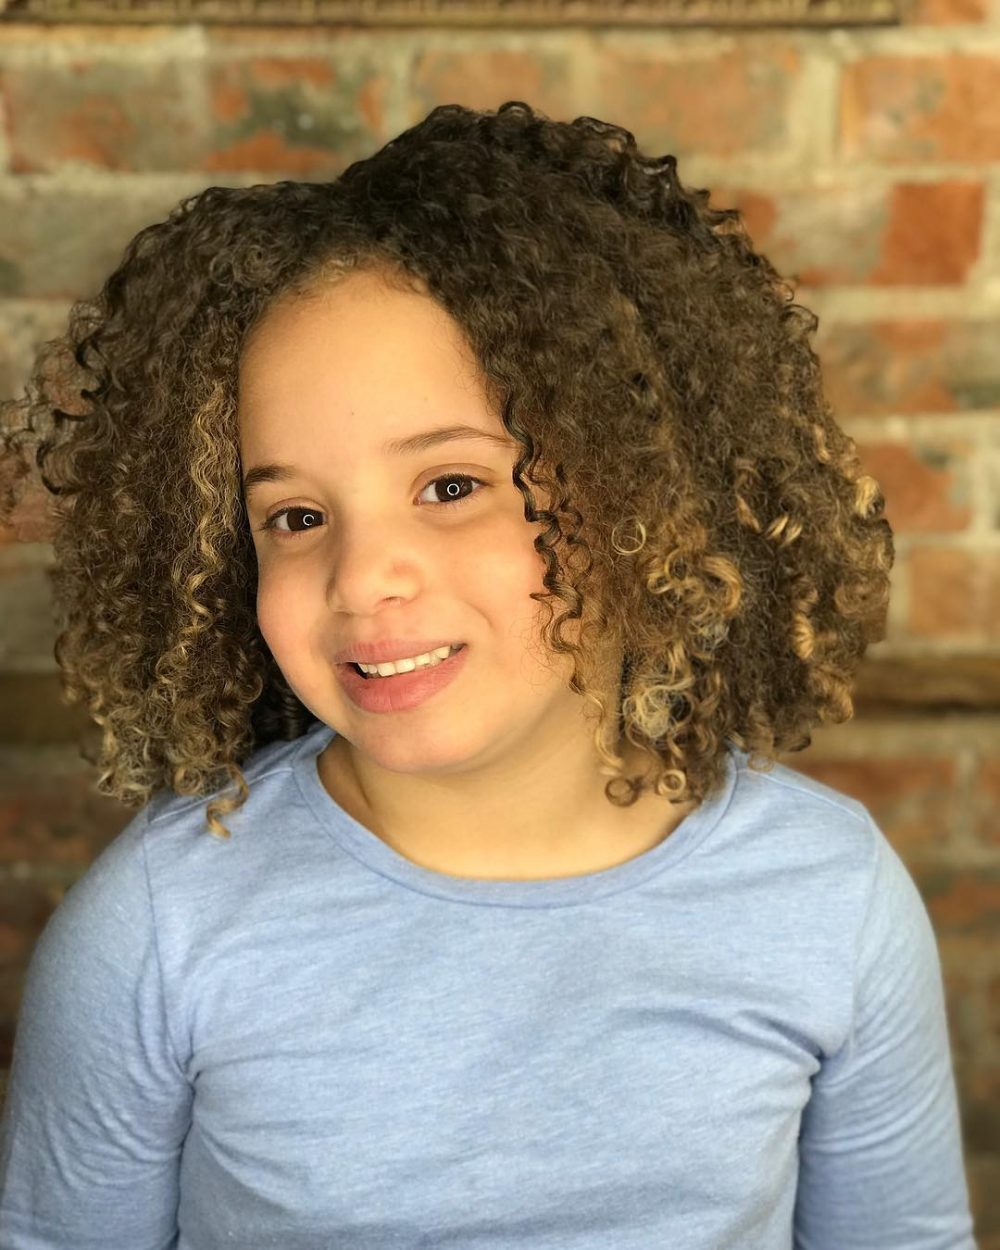 12 Cutest Hairstyles for Curly Hair Girls - Little Girls, Toddlers